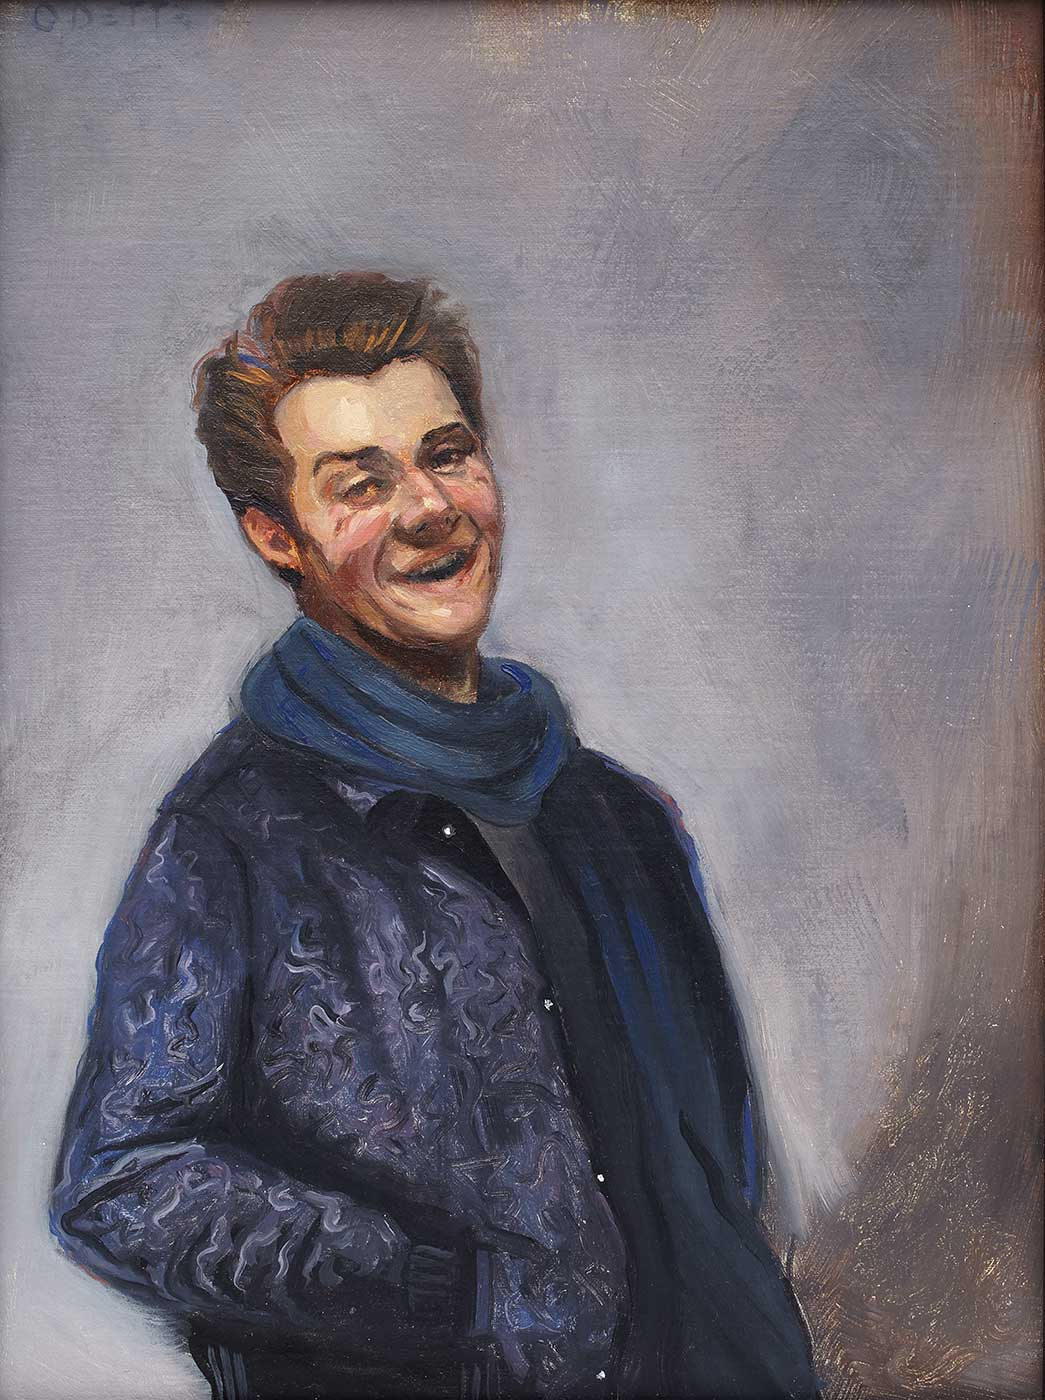 Evan Jensen - Self-portrait, Laughing, after Rembrandt